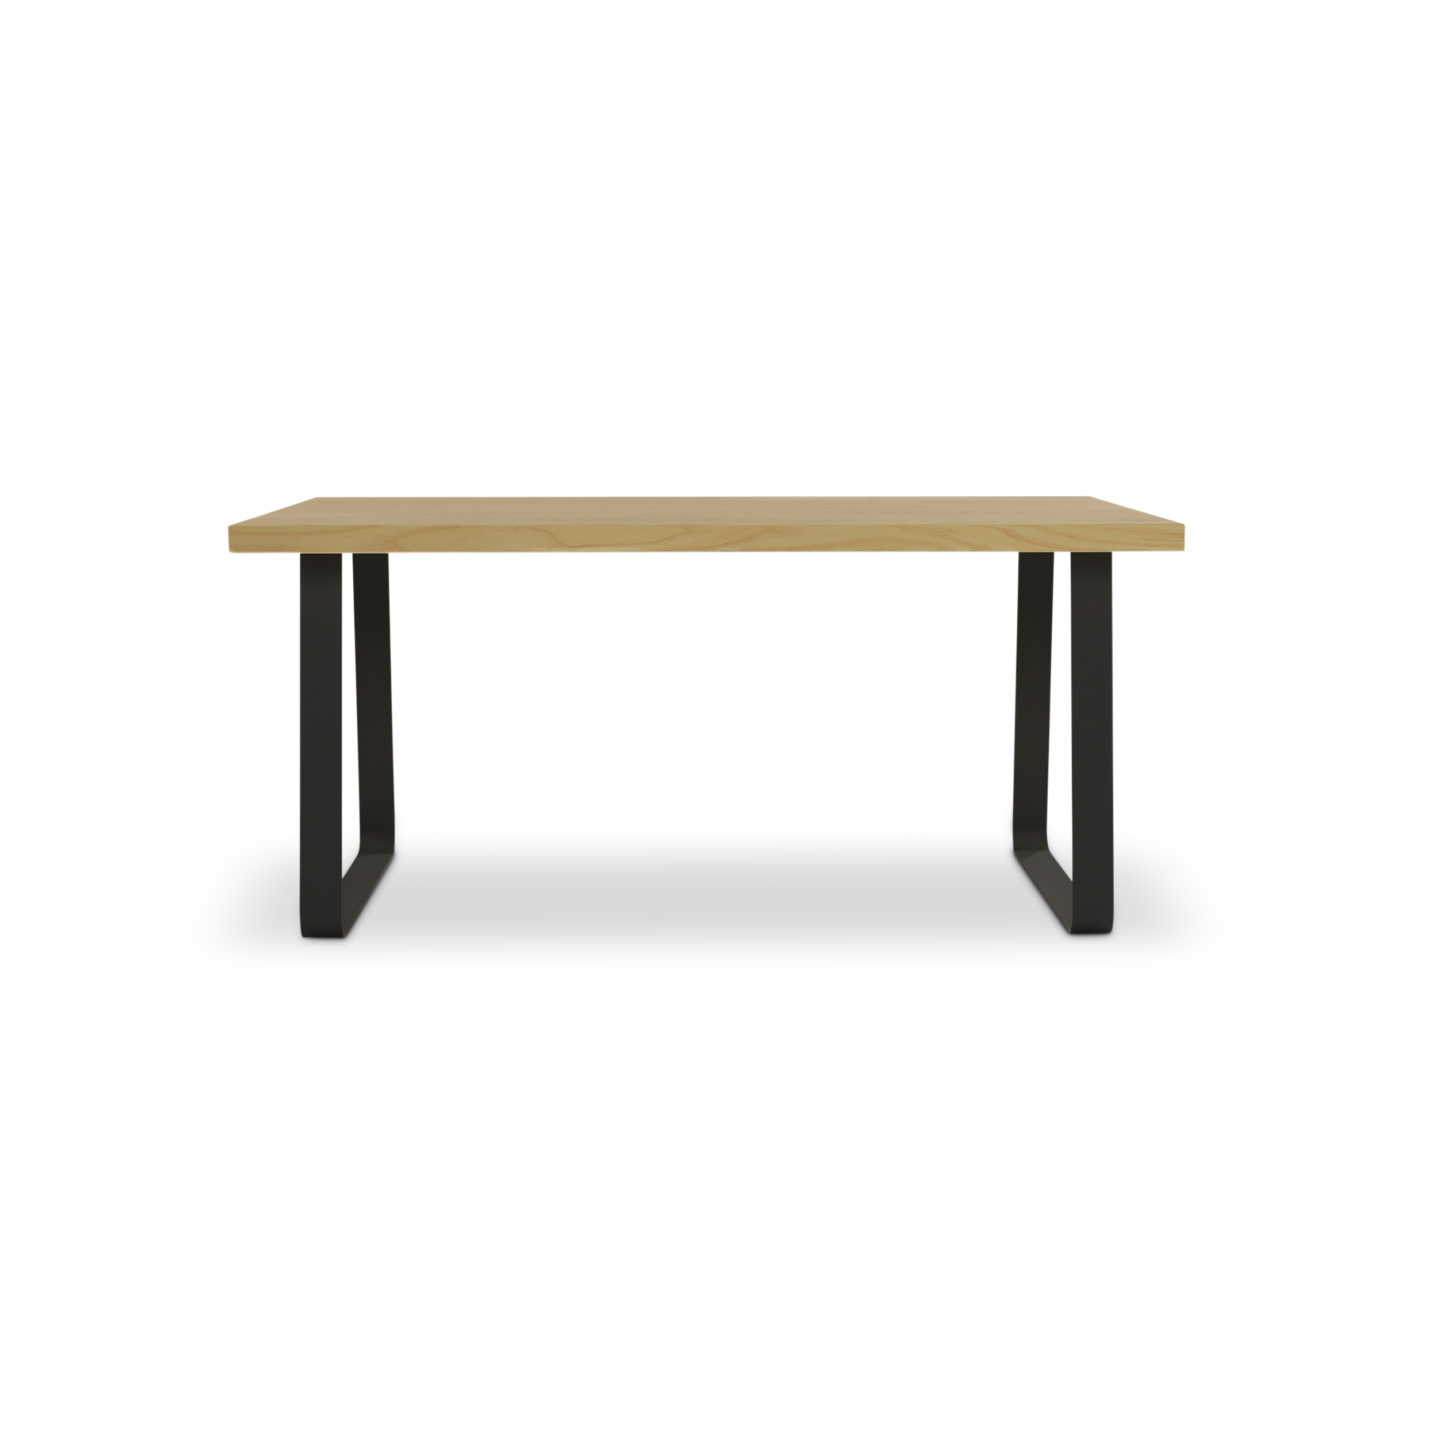 Thick ash planked table